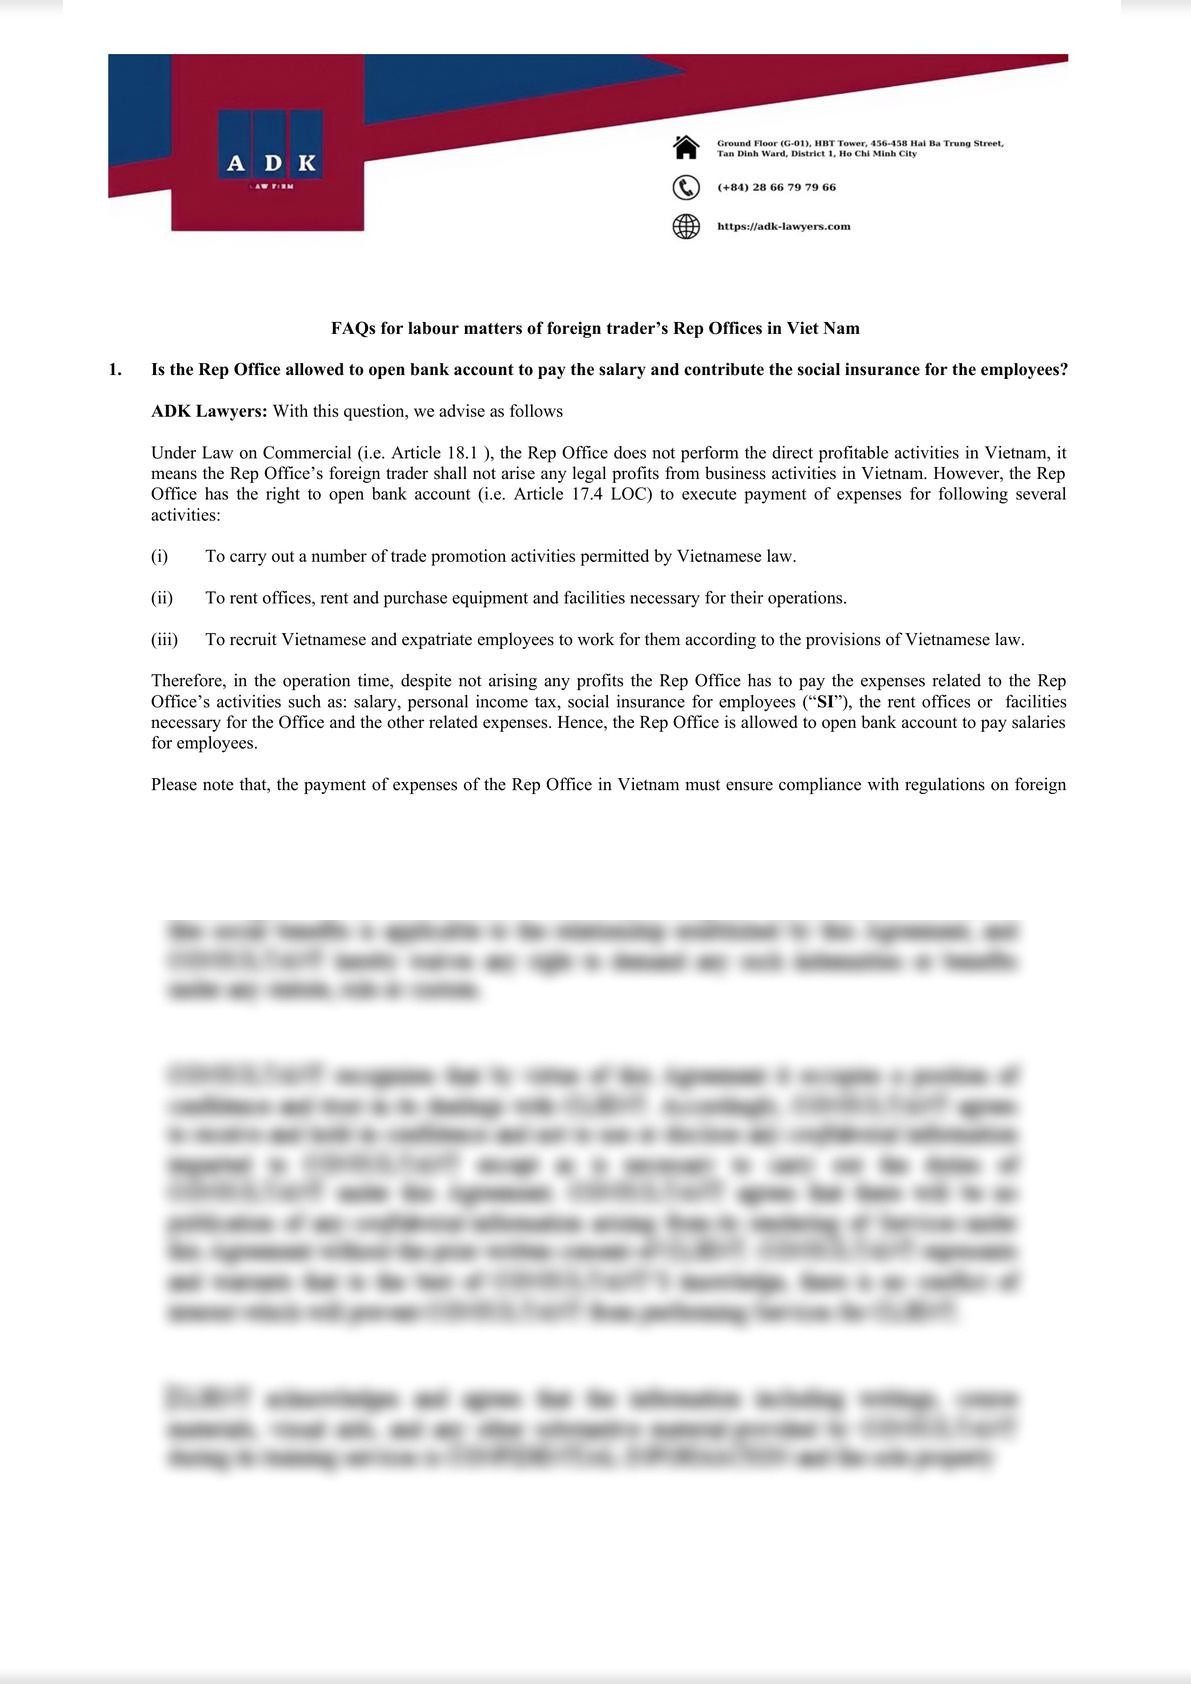 FAQs for labour matters of foreign trader's Rep Offices in Viet Nam-0